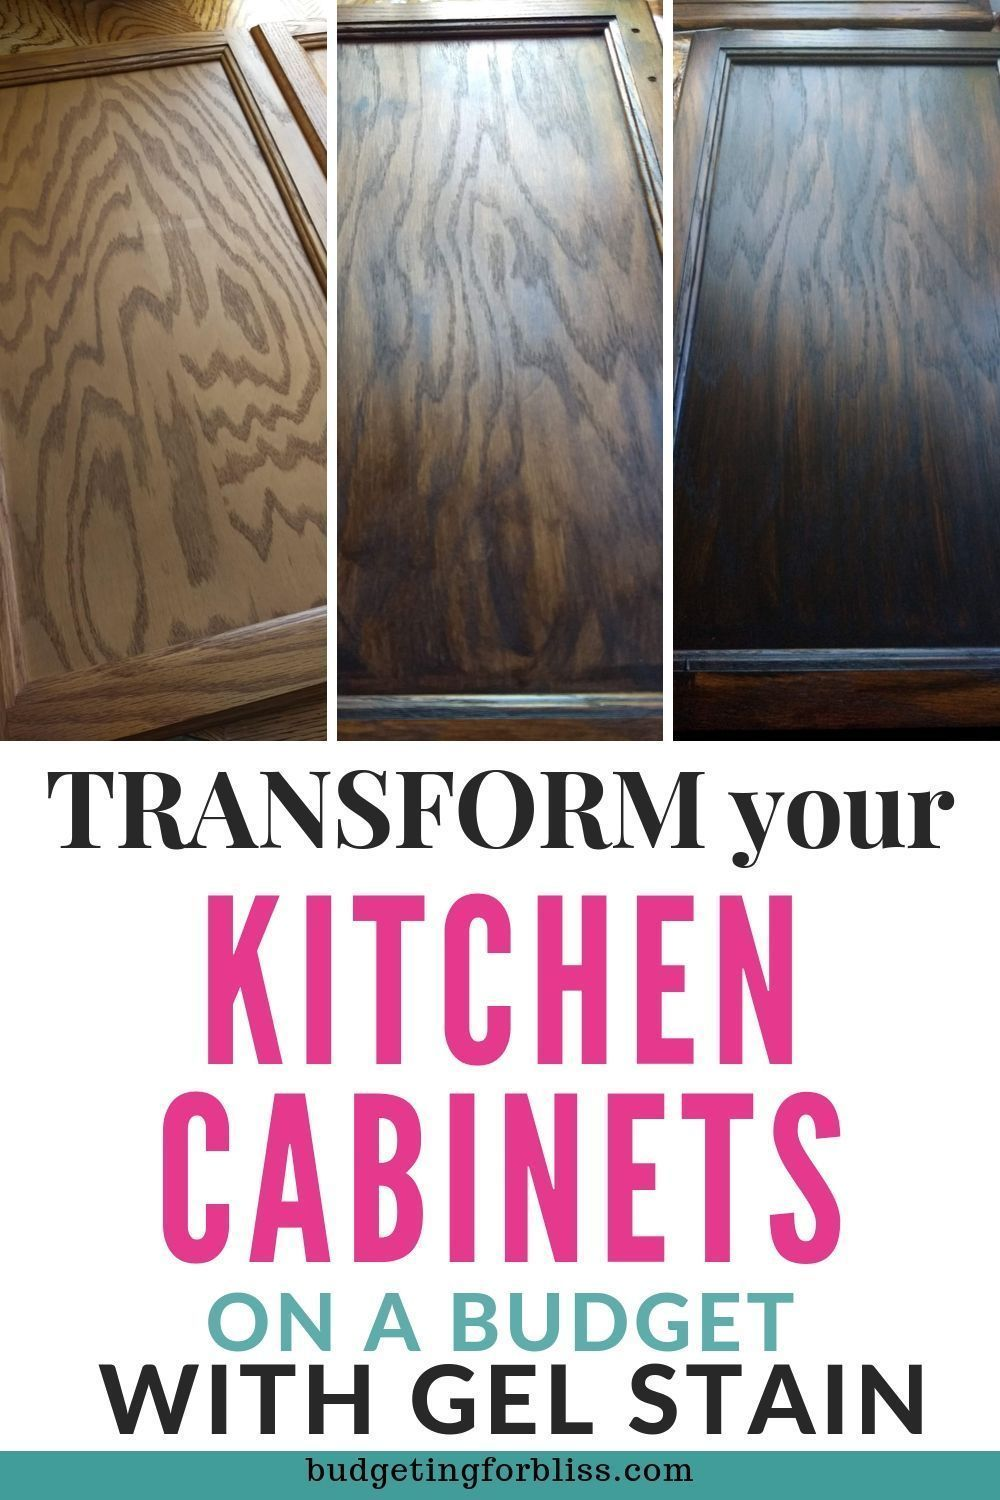 How to Gel Stain your Cabinets on a Budget #honeyoakcabinets Do you want to update your honey oak cabinets? Learn how to gel stain your cabinets on a budget. You can avoid the hassle of stripping and sanding your cabinets with gel stain. #gelstain #budgetmakeover #generalfinishes #javastain #honeyoakcabinets How to Gel Stain your Cabinets on a Budget #honeyoakcabinets Do you want to update your honey oak cabinets? Learn how to gel stain your cabinets on a budget. You can avoid the hassle of stri #honeyoakcabinets